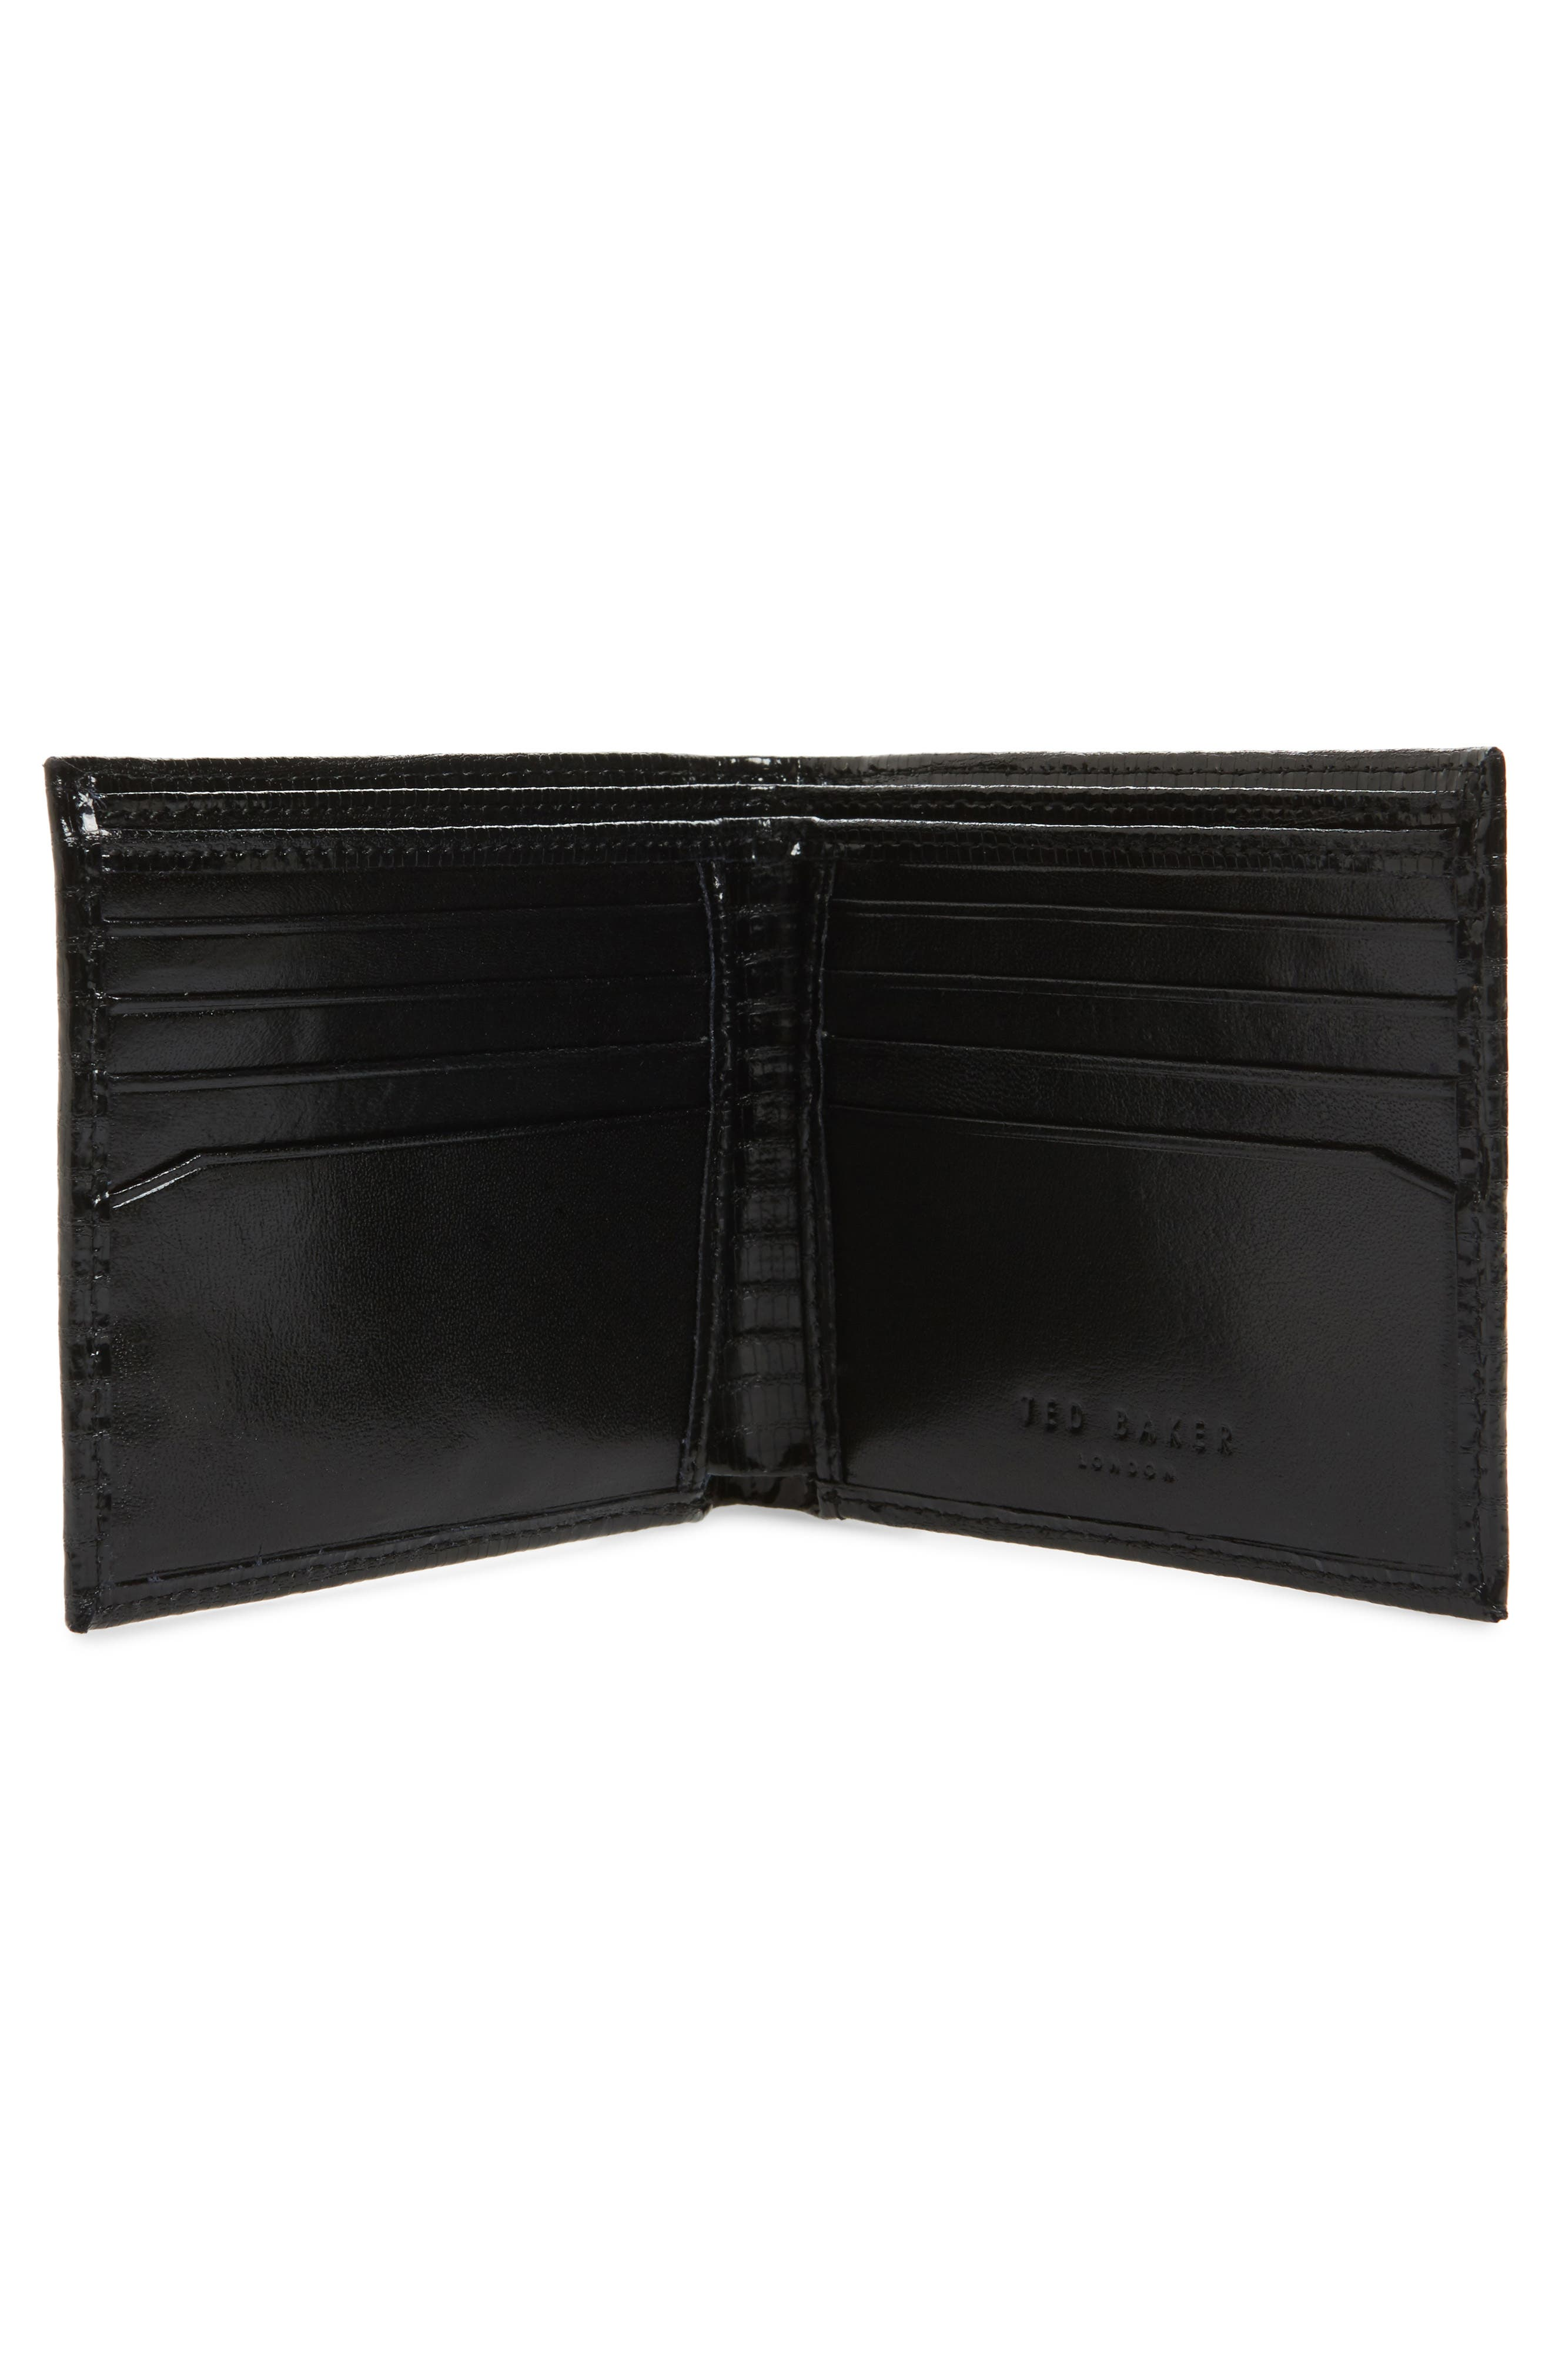 Slayts Leather Wallet,                             Alternate thumbnail 2, color,                             Black